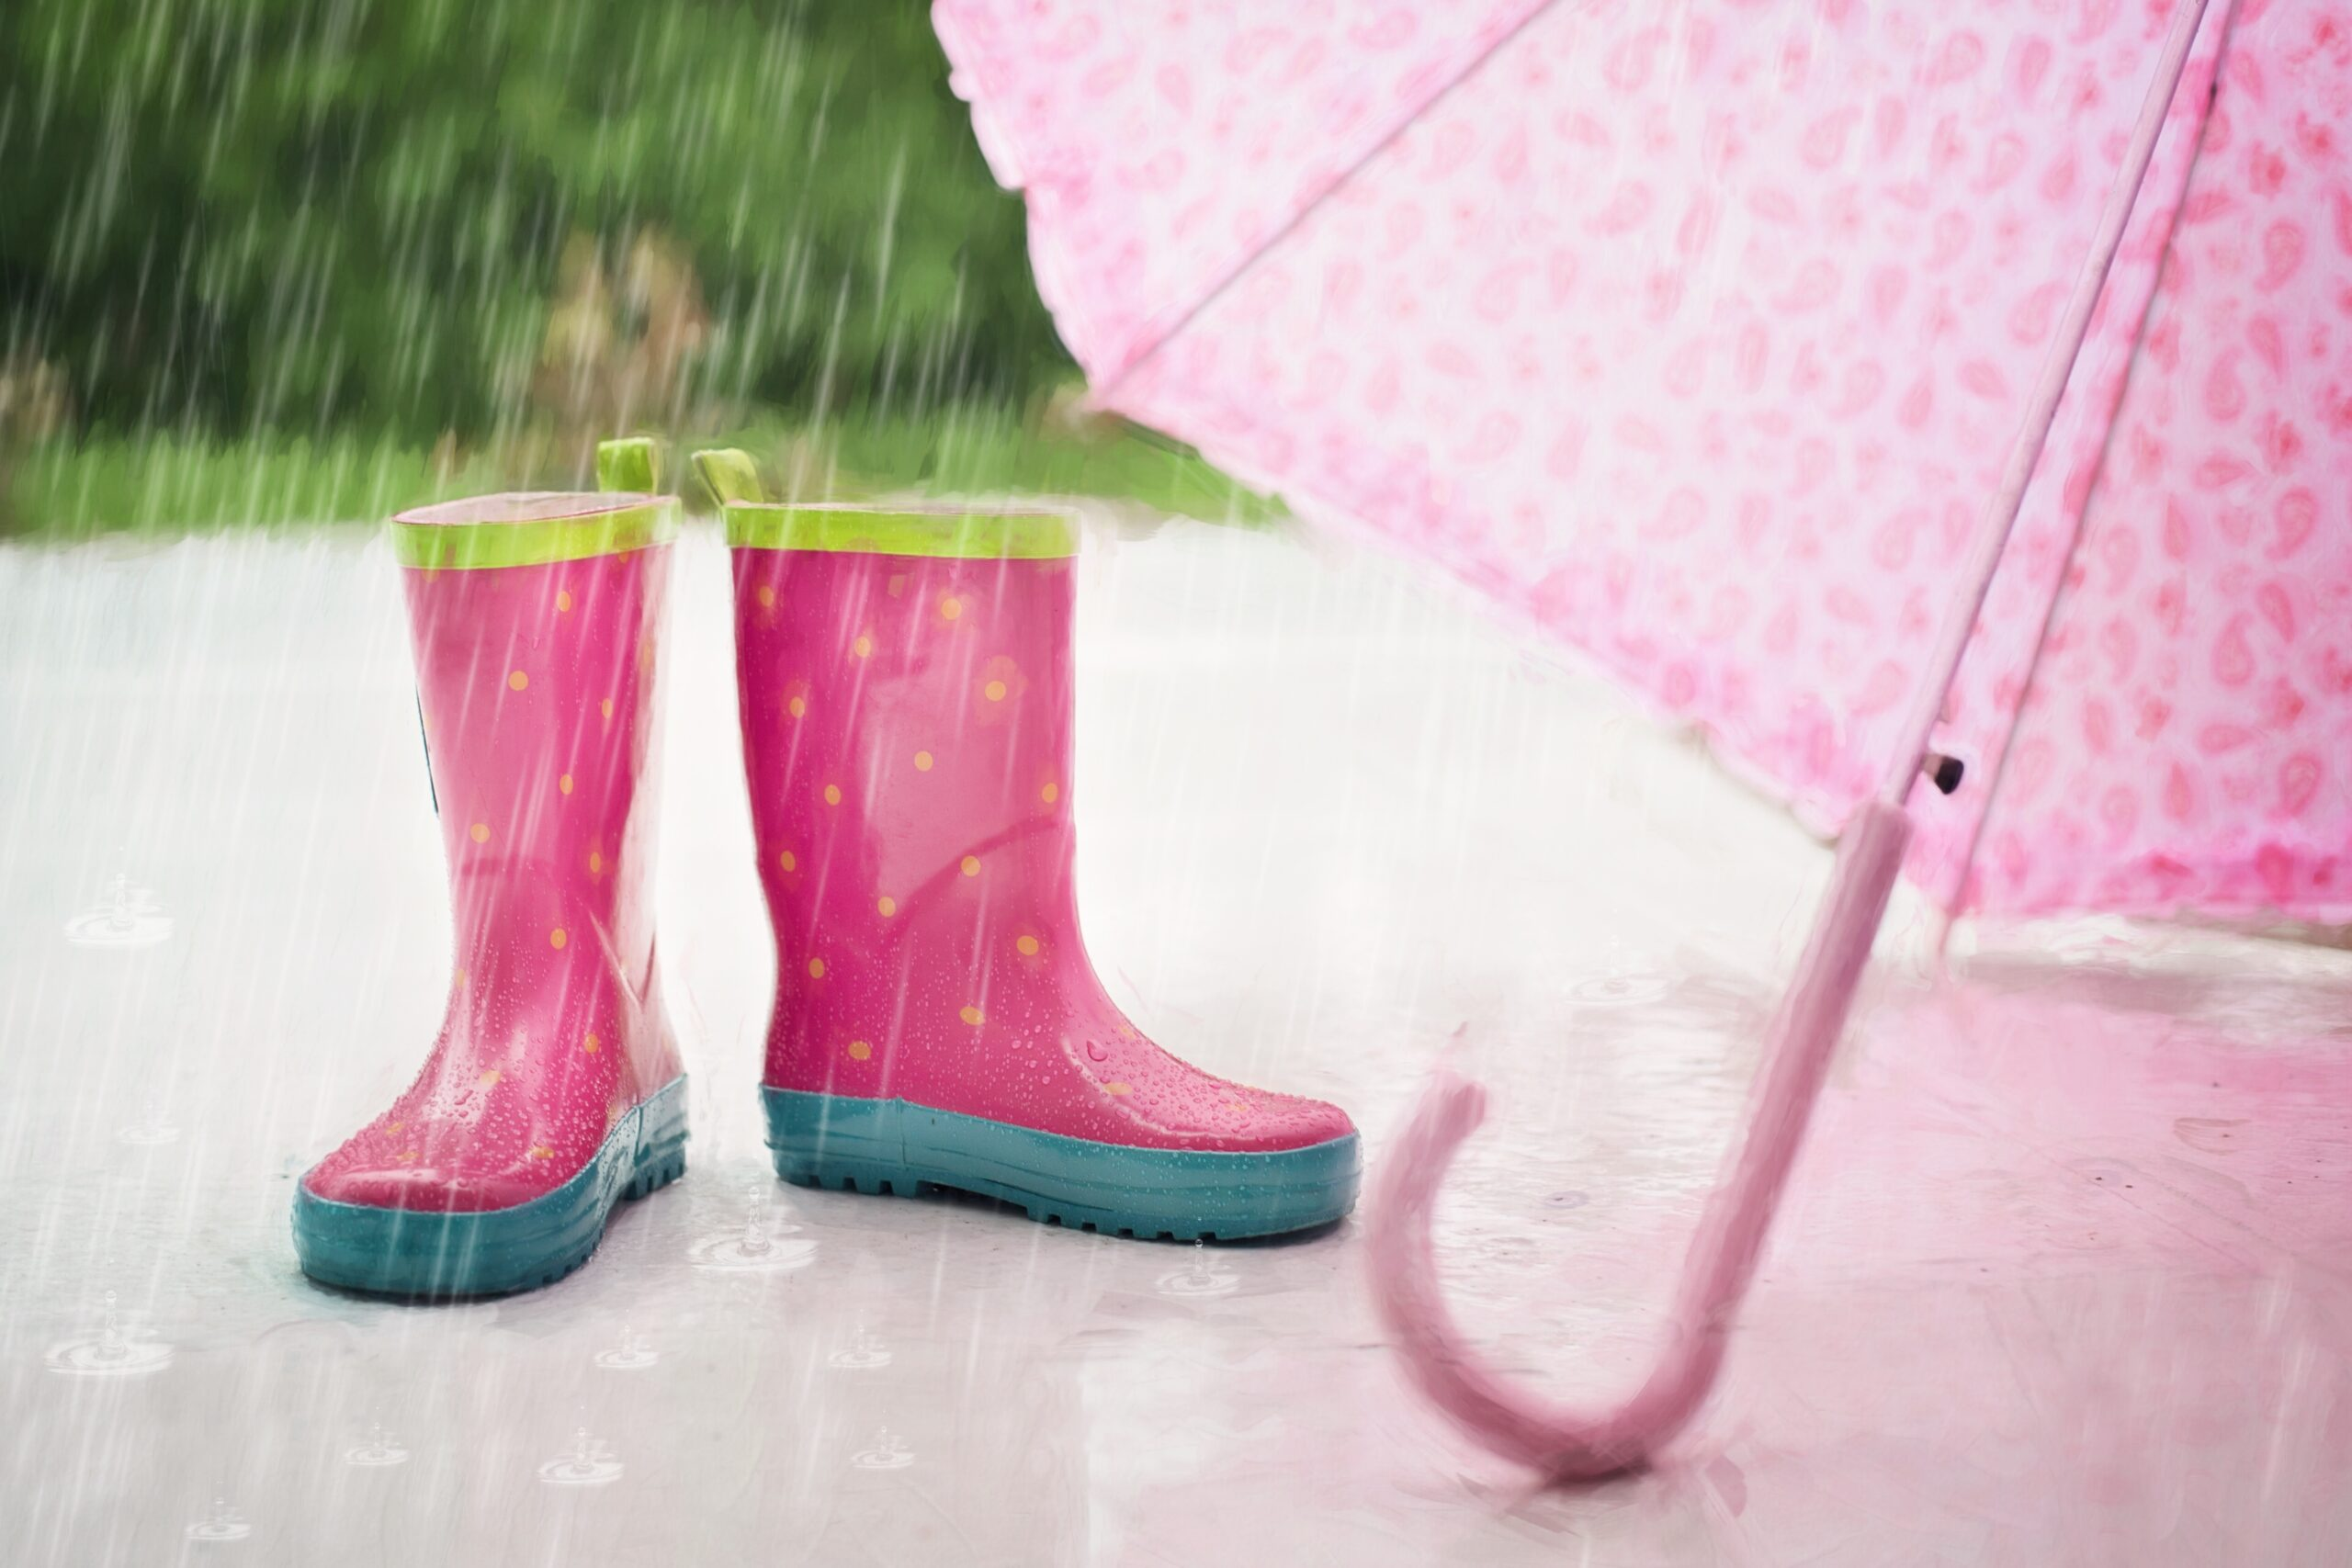 Wellington boots and umbrella for rainy days in Cornwall